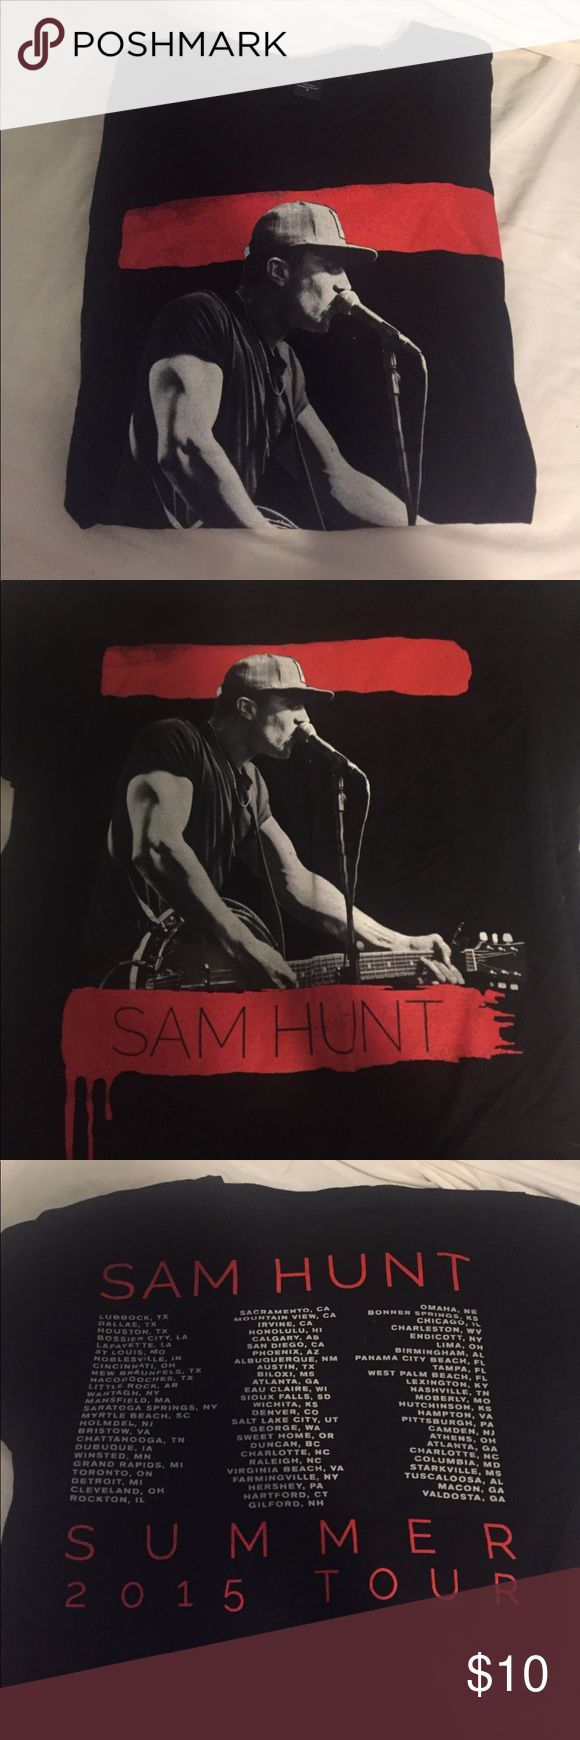 Sam Hunt t-shirt I got this from the Sam Hunt concert a while back and haven't worn it much. It's from the 2015 tour :) Tops Tees - Short Sleeve